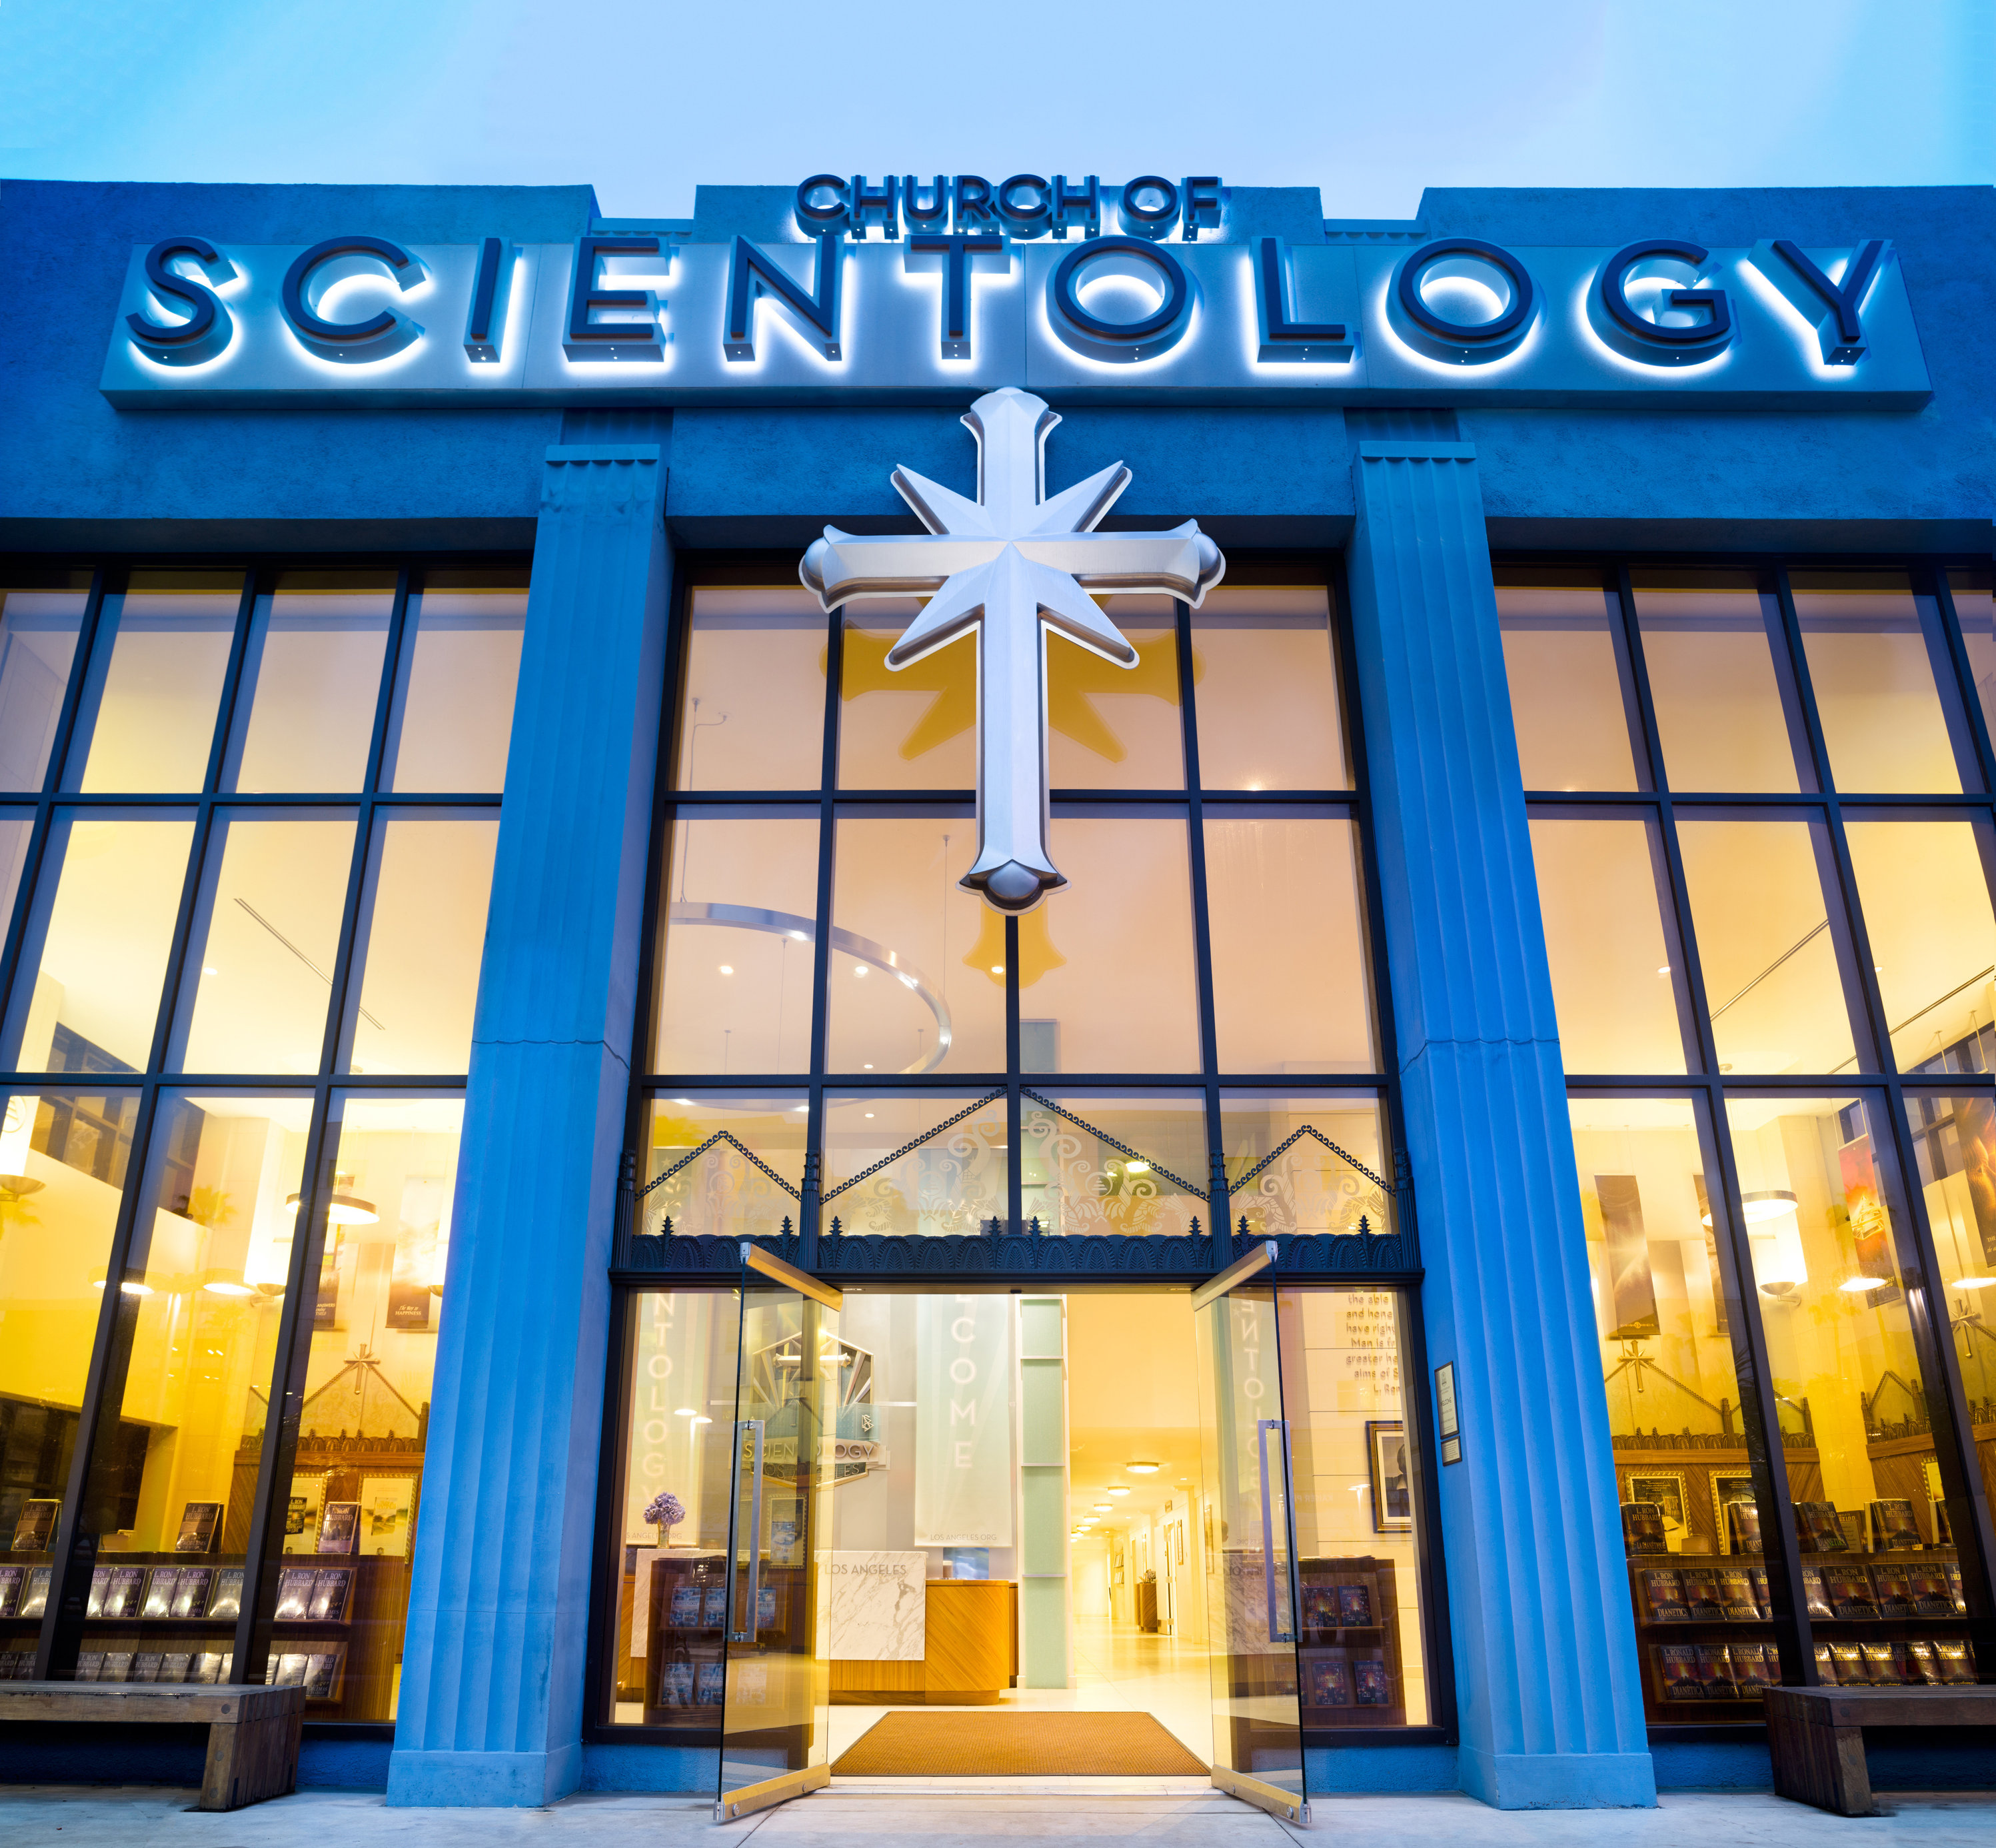 an analysis of the church of scientology established in 1954 The church of scientology was founded in the united states in 1954 by science- fiction writer l ron hubbard and was accorded the status of a.